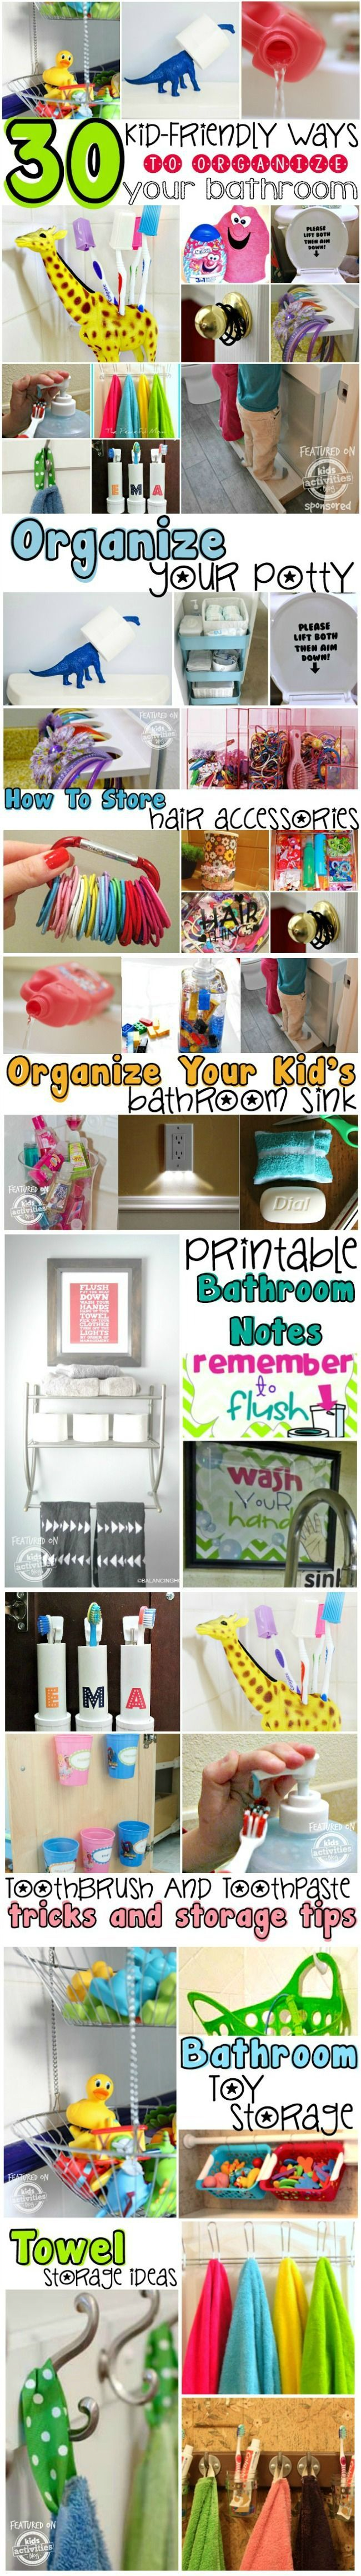 30 Kid-friendly Ways to Organize Your Bathroom Feature